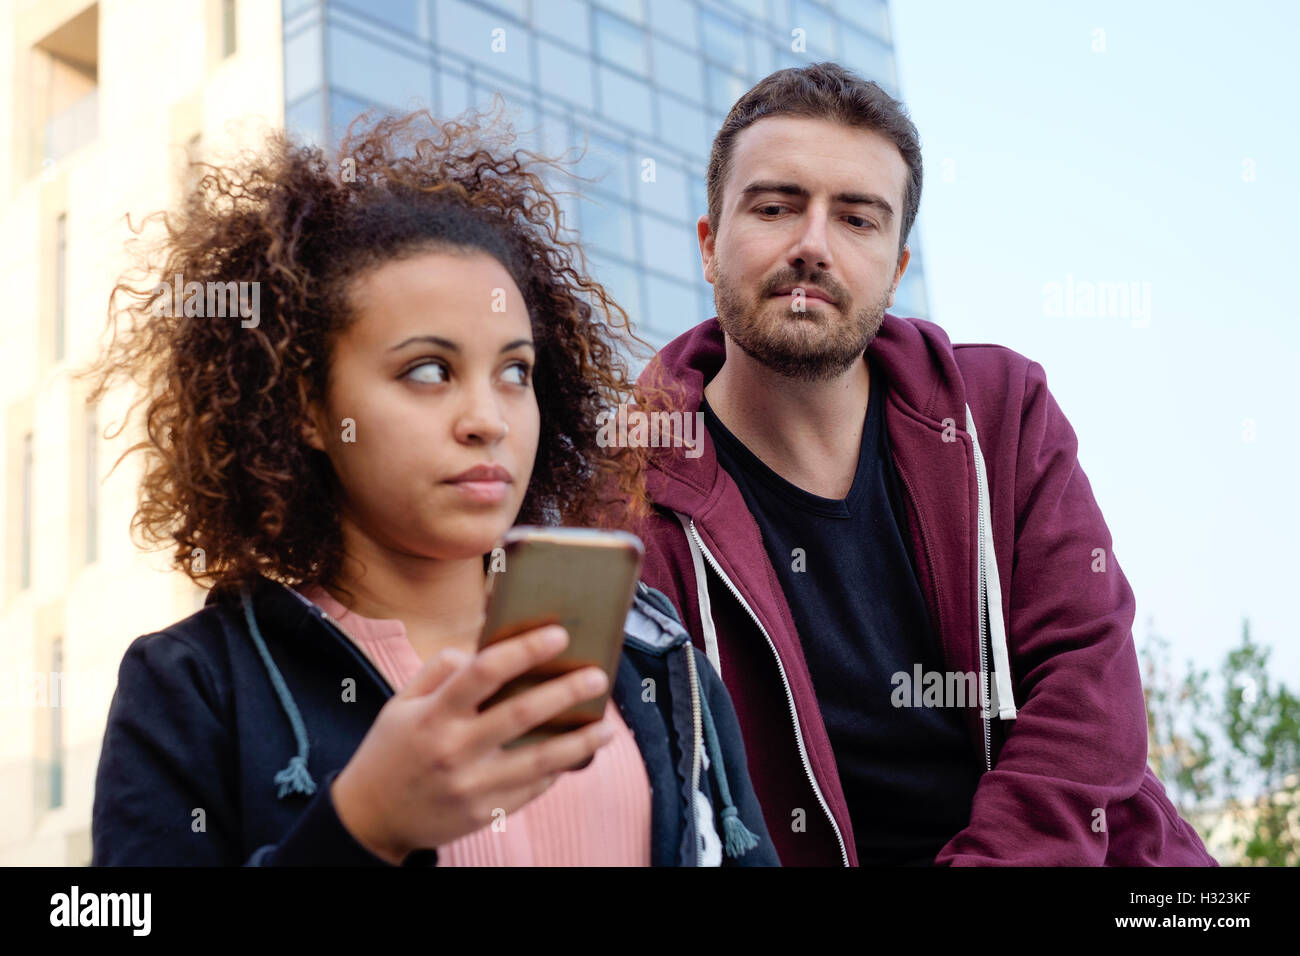 Boy spying his friend mobile phone - Stock Image